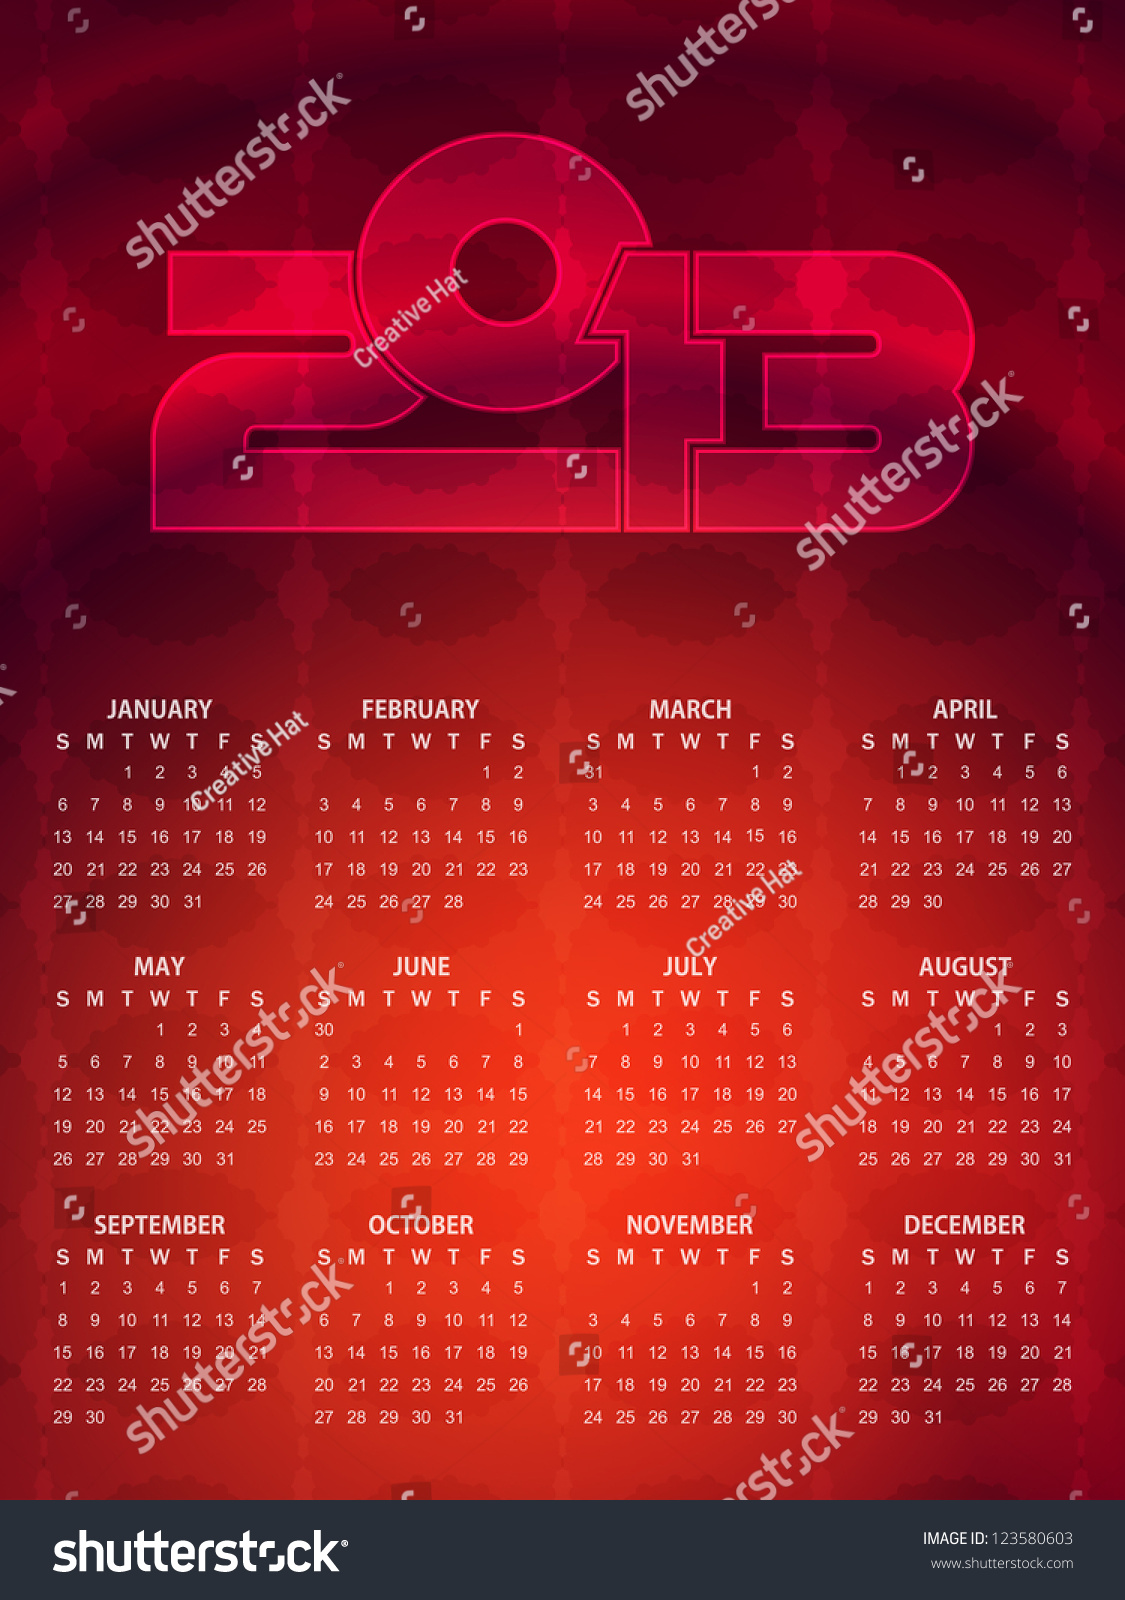 Beautiful Calendar Design : Beautiful calendar design in red color vector